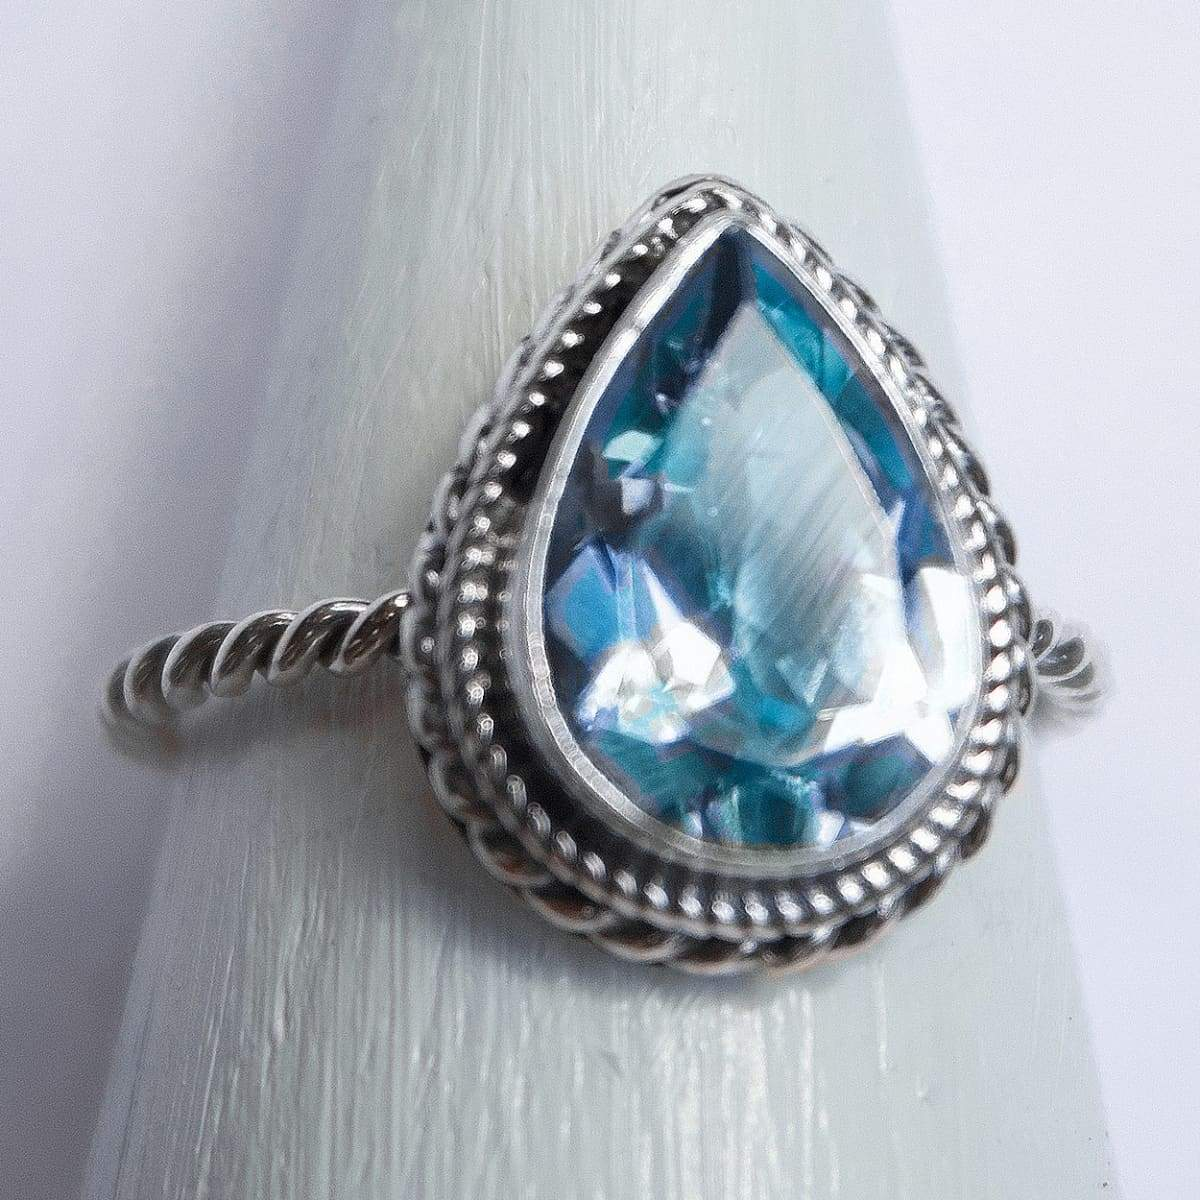 Rings Classy Pears Blue Topaz Ring Gemstone Silver Handmade Jewelry Gift - by Craftnez